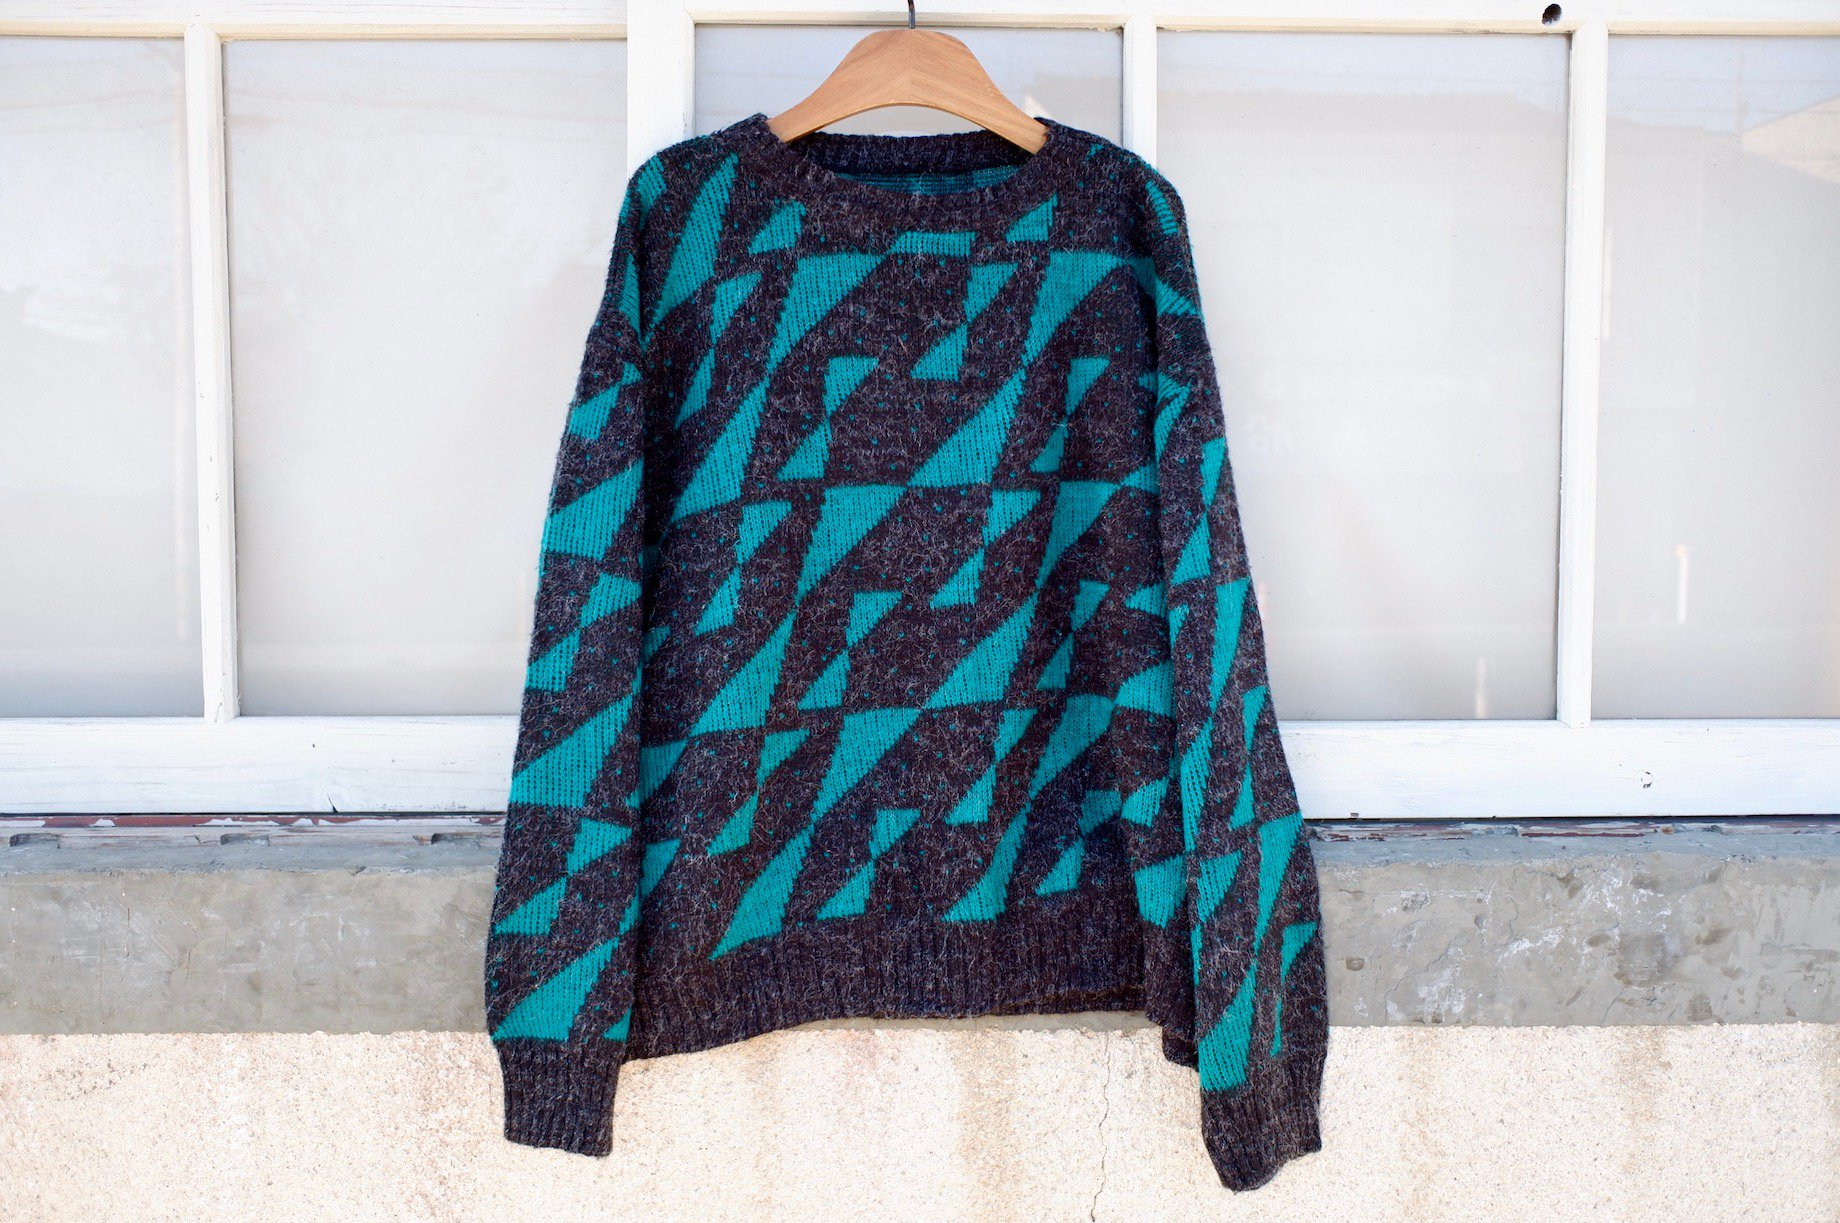 <img class='new_mark_img1' src='https://img.shop-pro.jp/img/new/icons42.gif' style='border:none;display:inline;margin:0px;padding:0px;width:auto;' />demon's hideout sweater